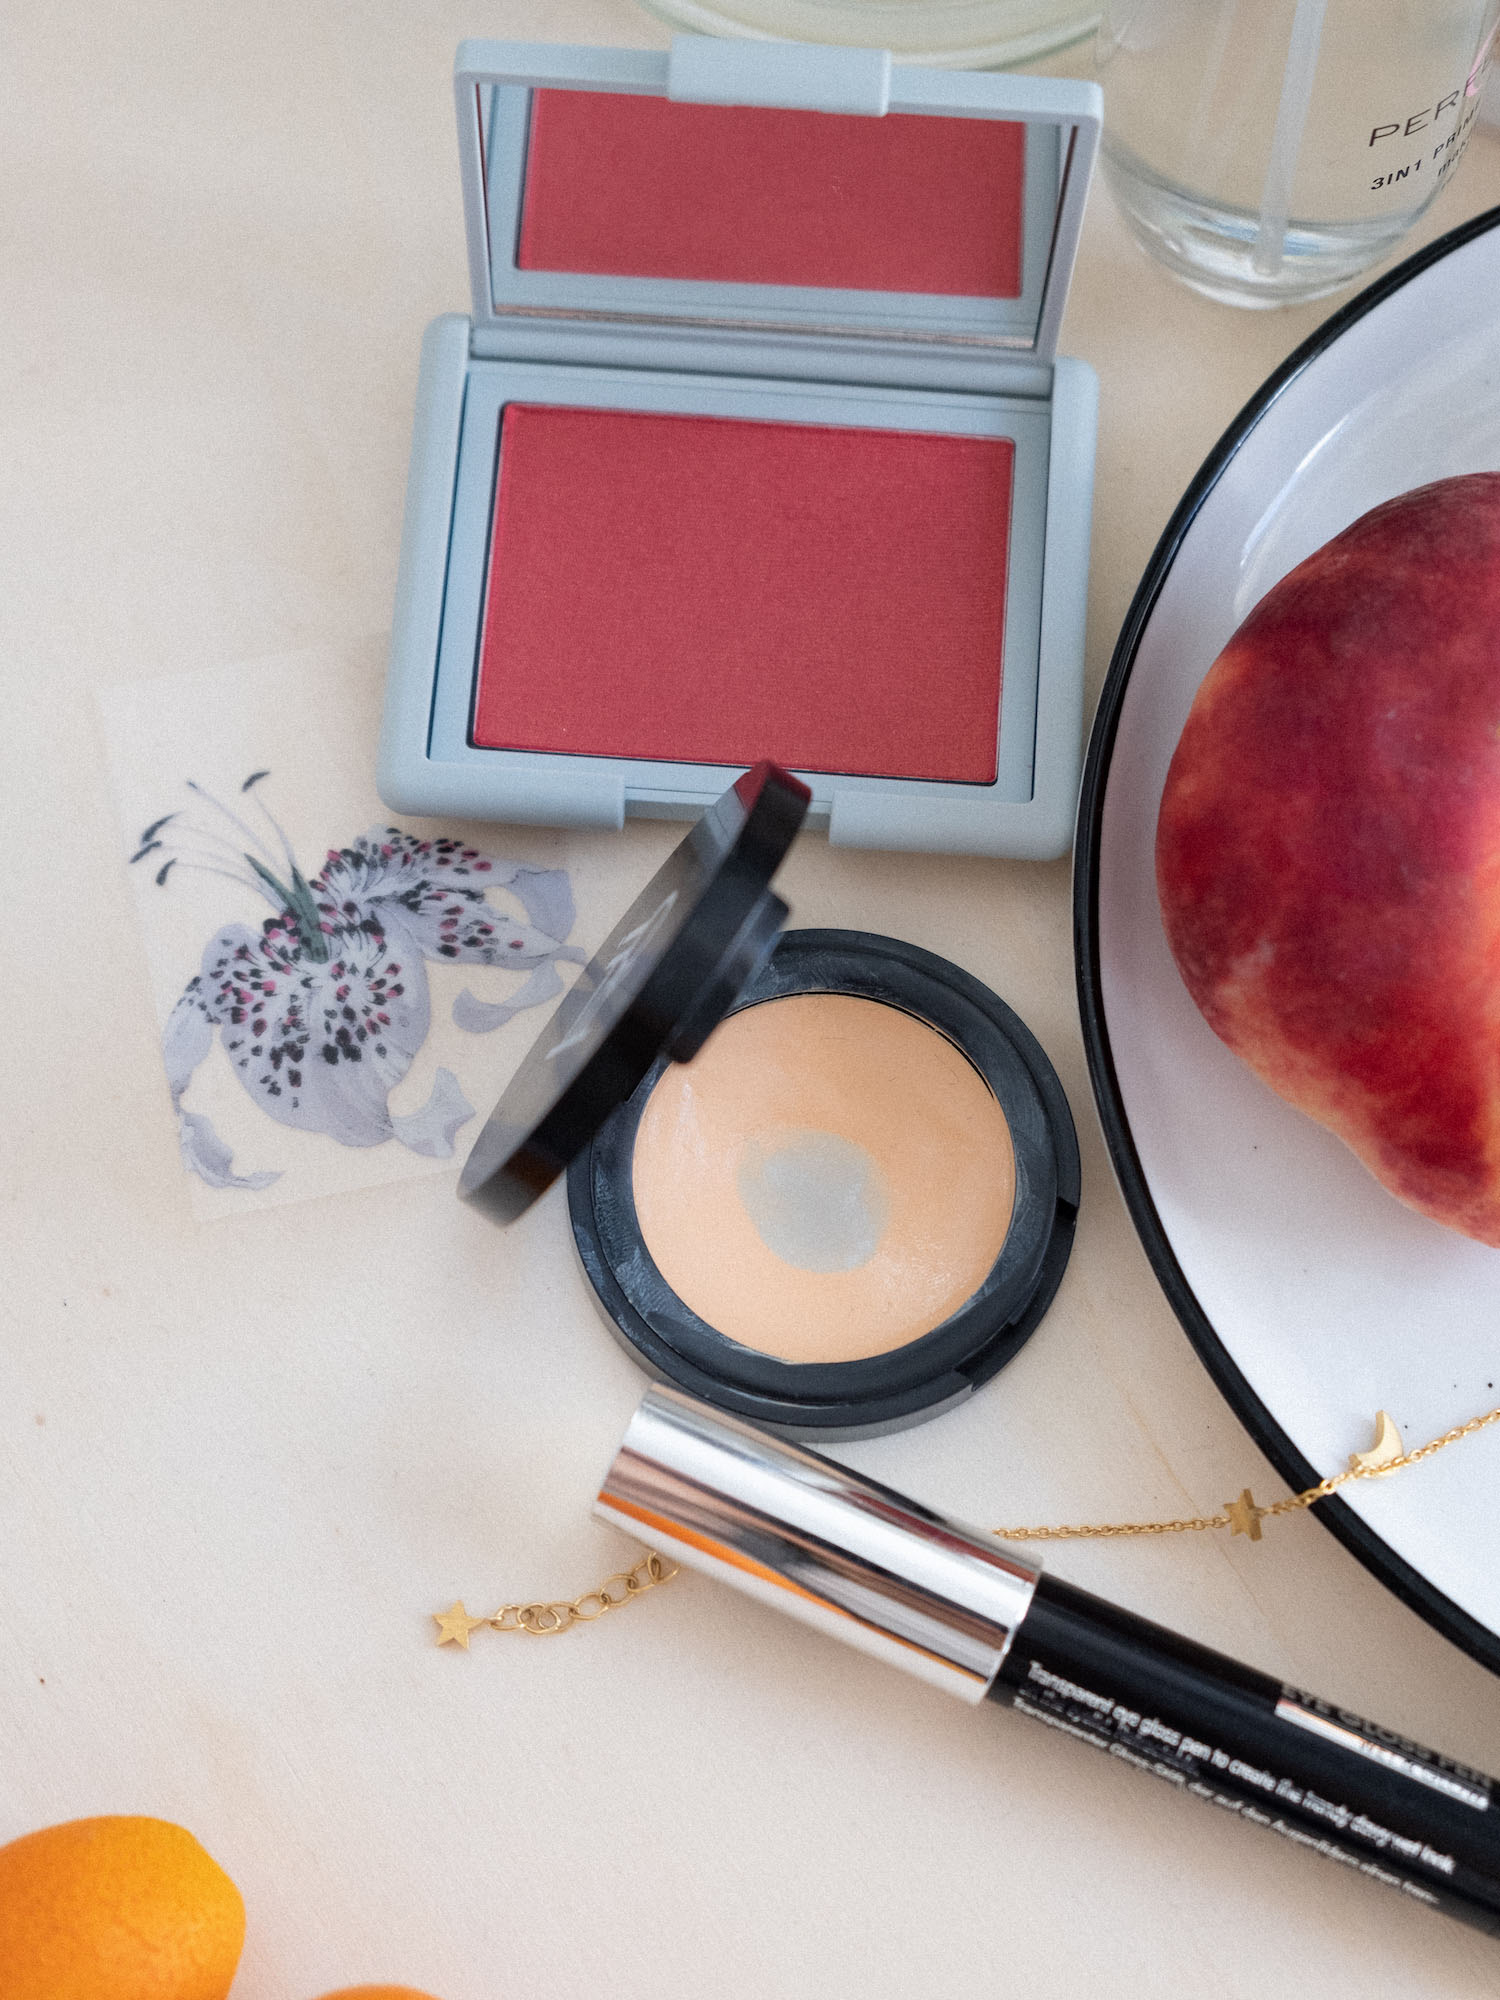 Beautyblog Nars Erdem Loves Me Blush Sommer Make Up Tutoral